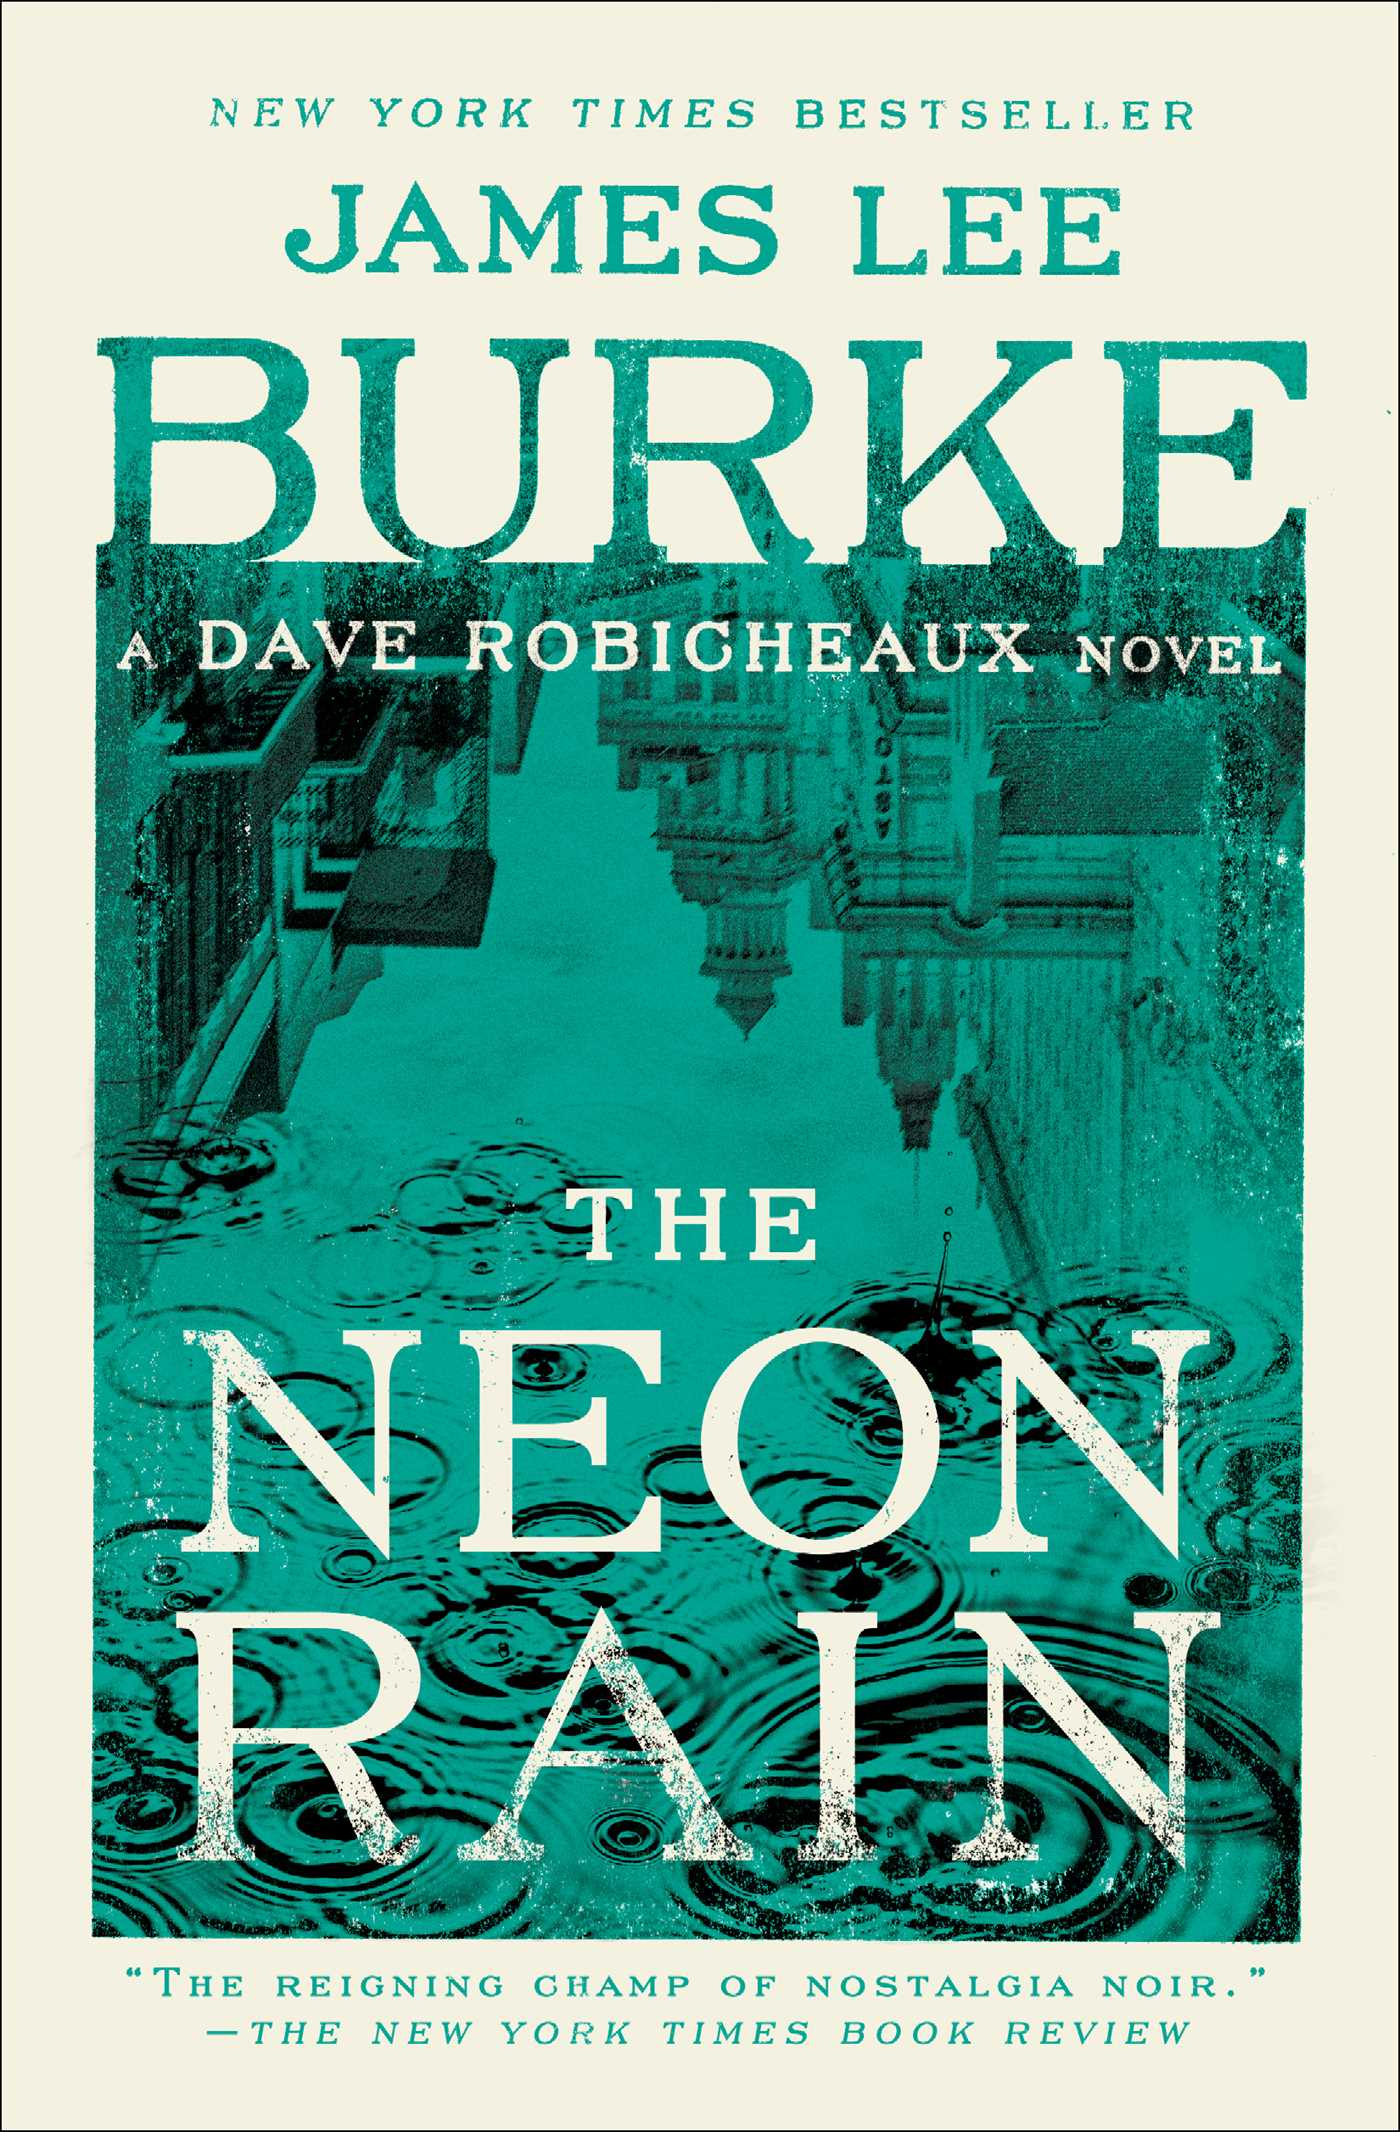 Book Cover Image (jpg): The Neon Rain